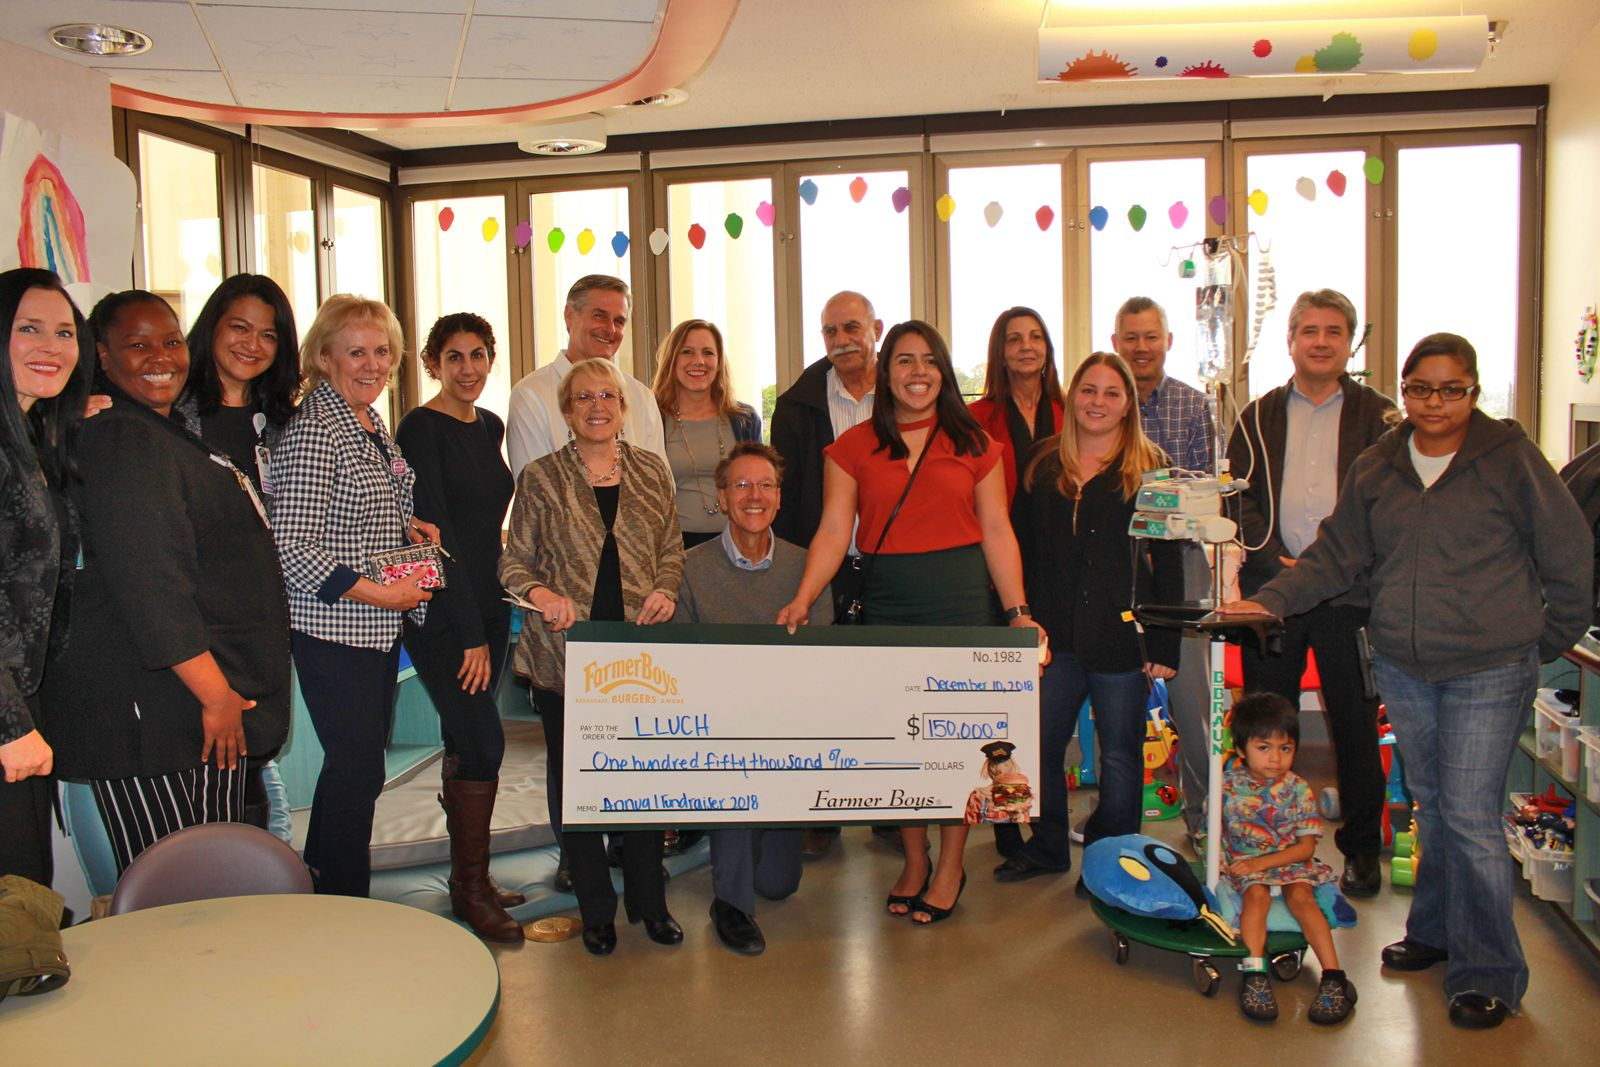 Farmer Boys raised $150,000 for Loma Linda University Children's Hospital (LLUCH) during their 18th annual LLUCH fundraiser, which took place in-store at participating California restaurants earlier this year.